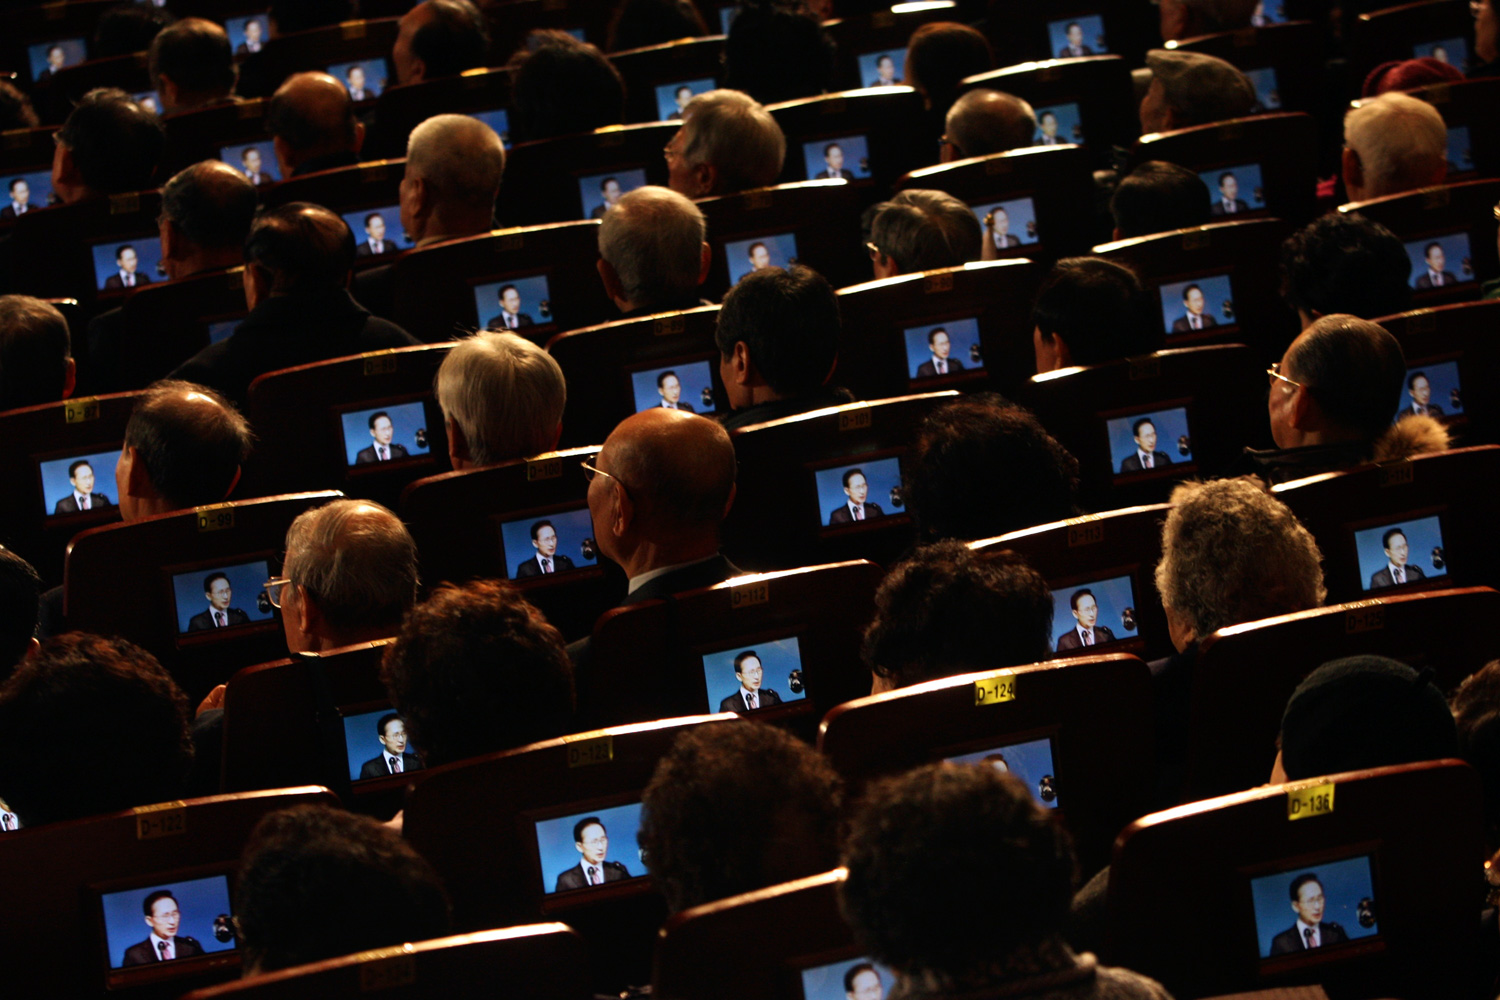 March 1, 2012. Small screens show South Korean President Lee Myung-bak as participants listen to his speech during the 93th anniversary ceremony of Independence Movement Day, a public holiday to remember activists who fought for Korean independence against Japanese colonization, in Seoul.